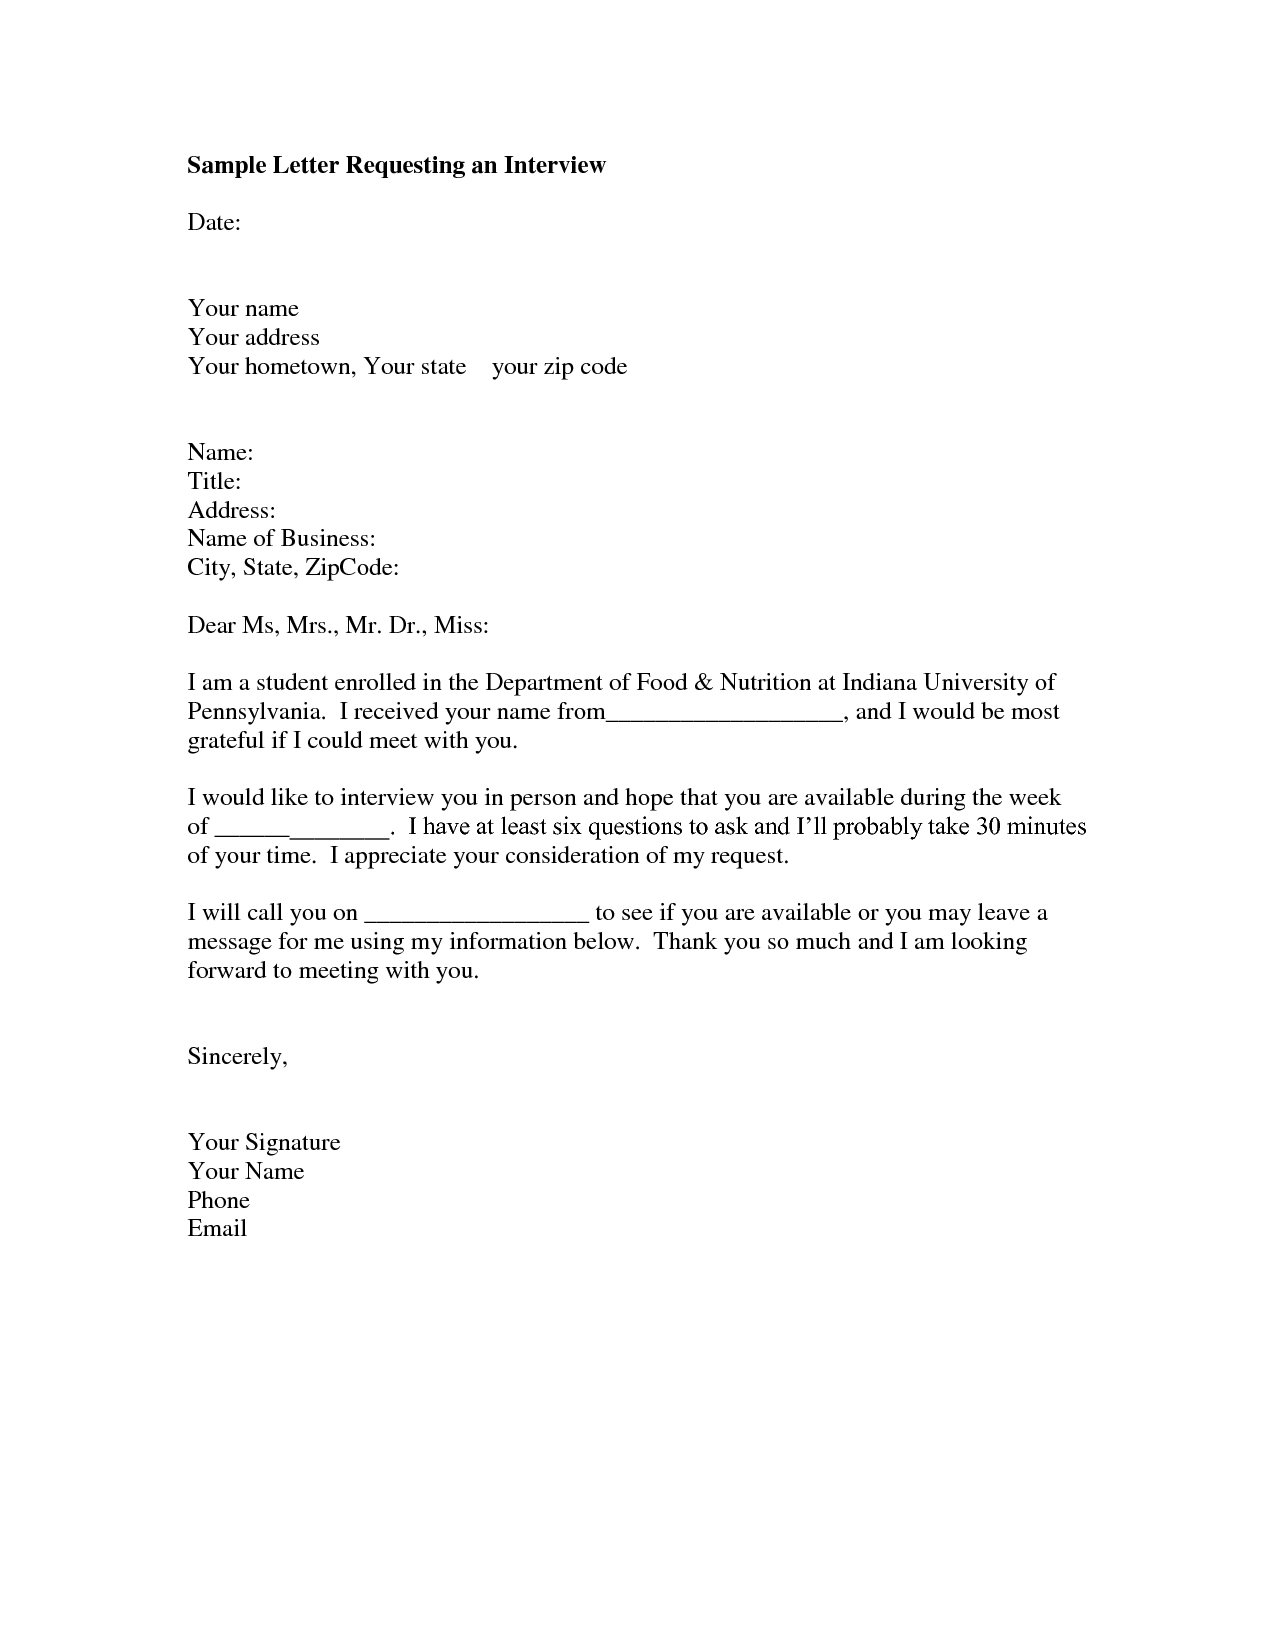 Interview request letter sample format of a letter you can use to interview request letter sample format of a letter you can use to request an interview with a prospecitive employer altavistaventures Gallery